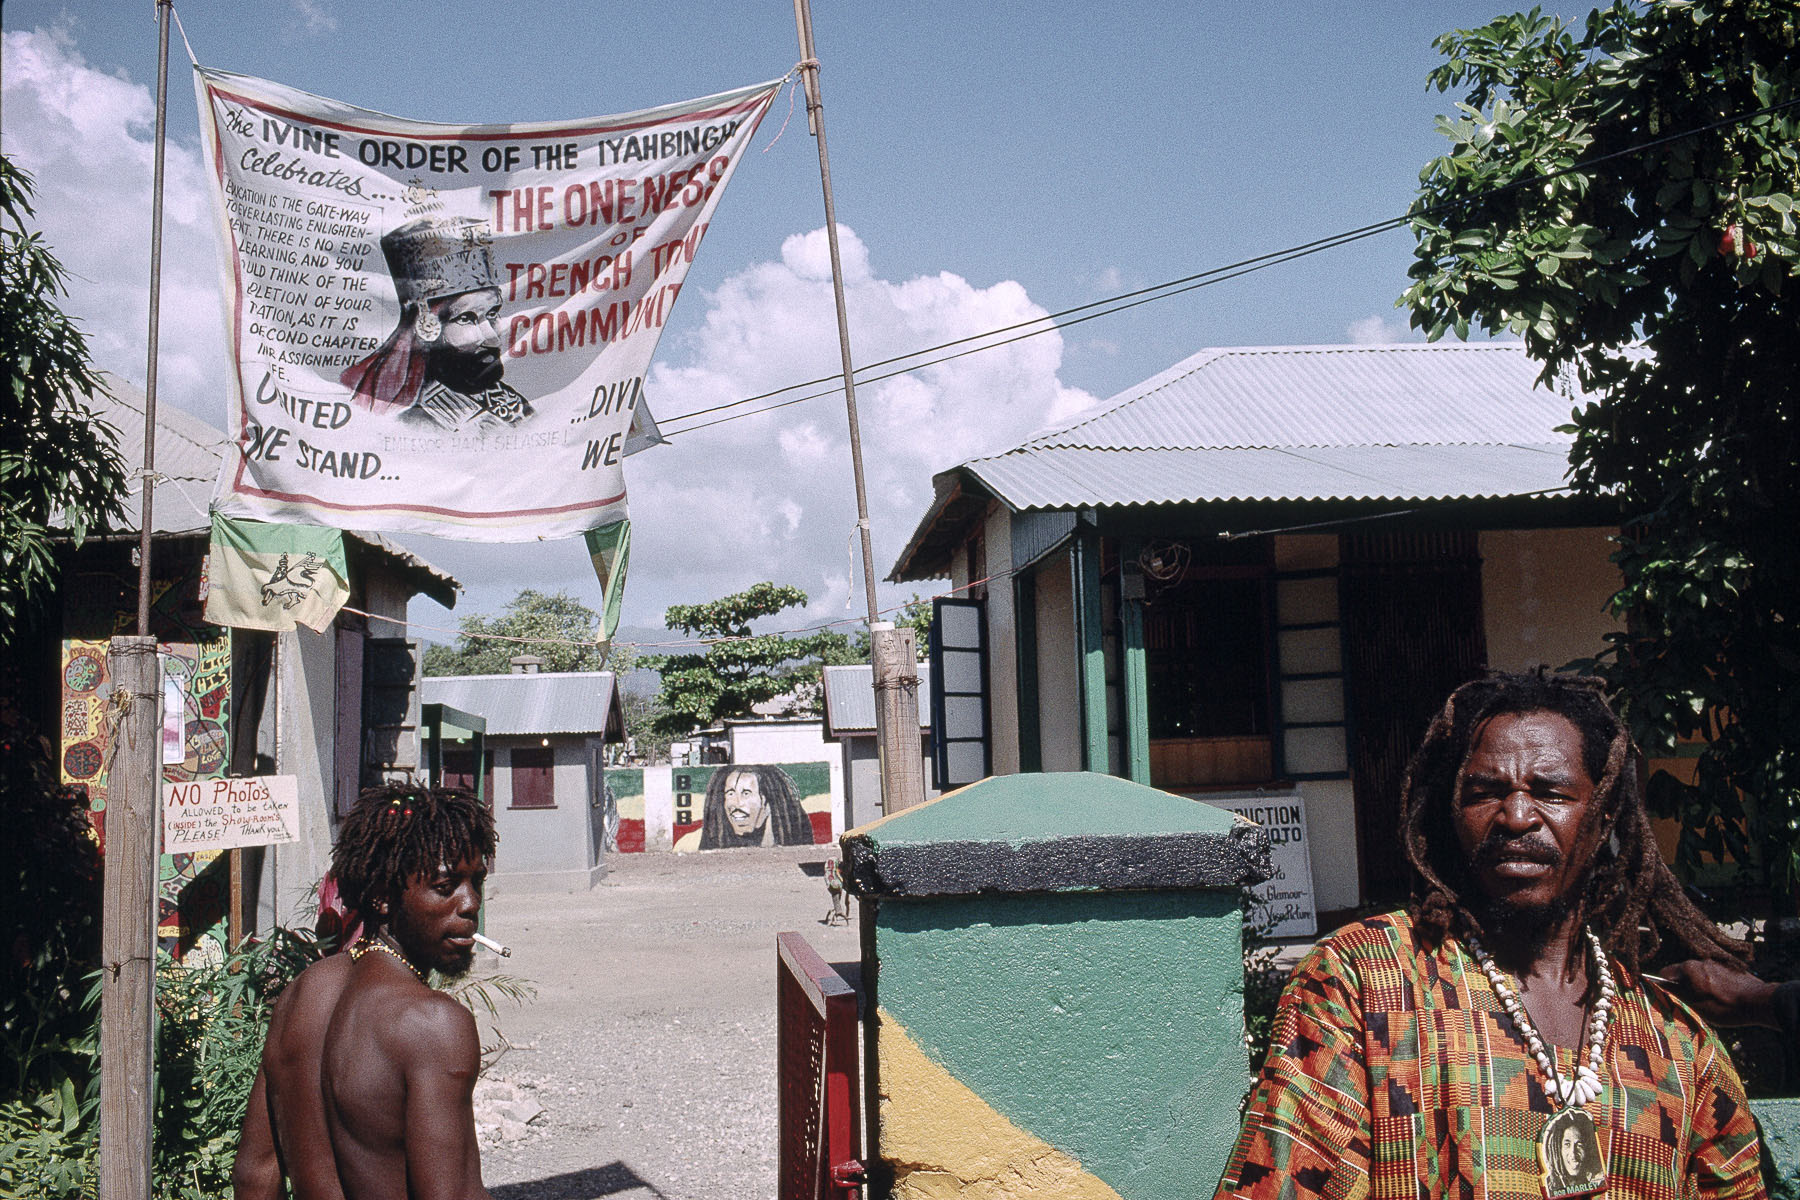 Bob Marley's house in Trenchtown in January 2001